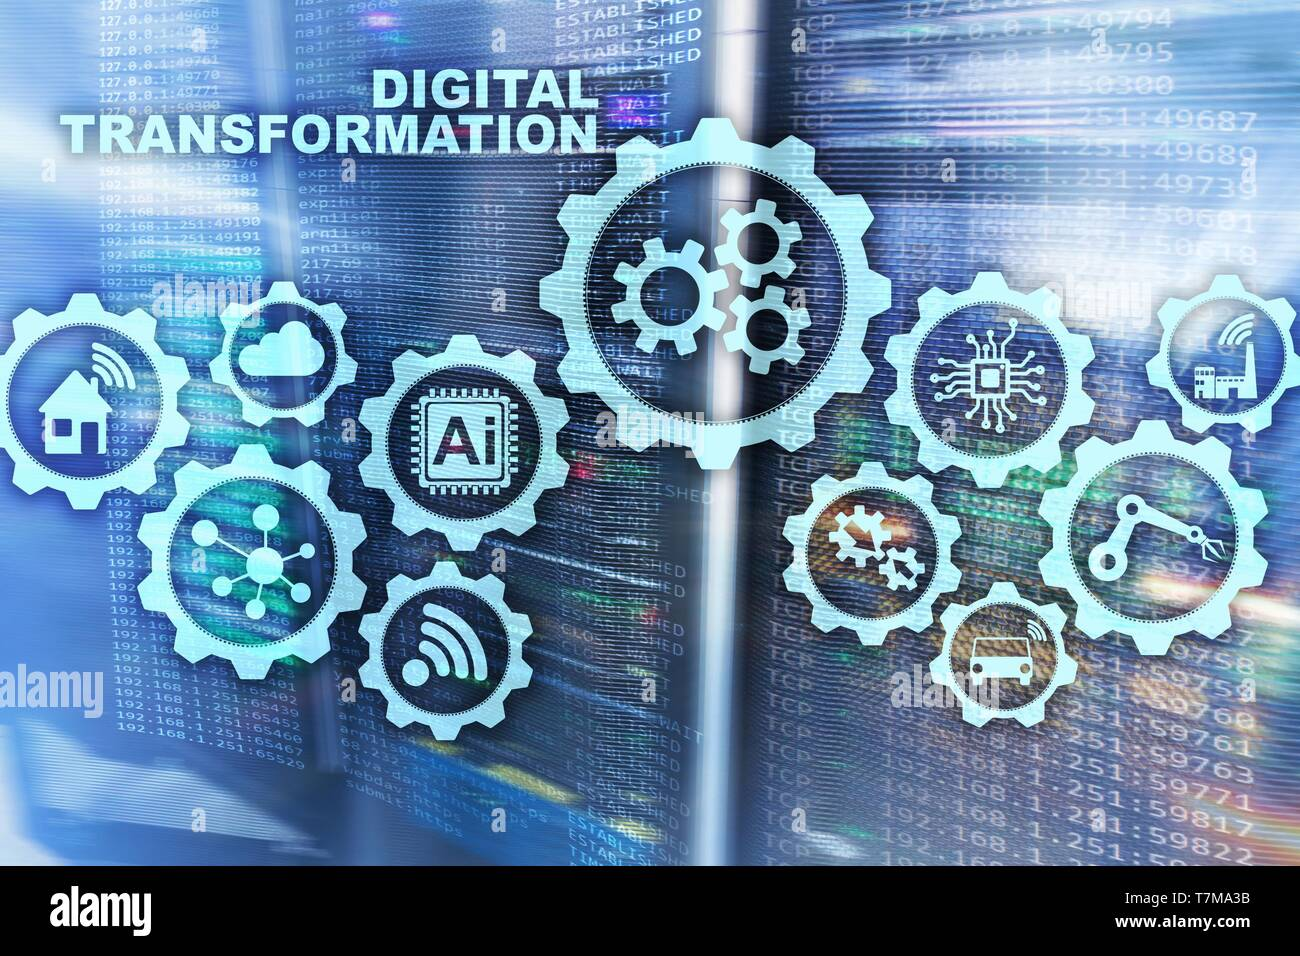 Digital Transformation Concept of digitalization of technology business processes. Datacenter background. - Stock Image